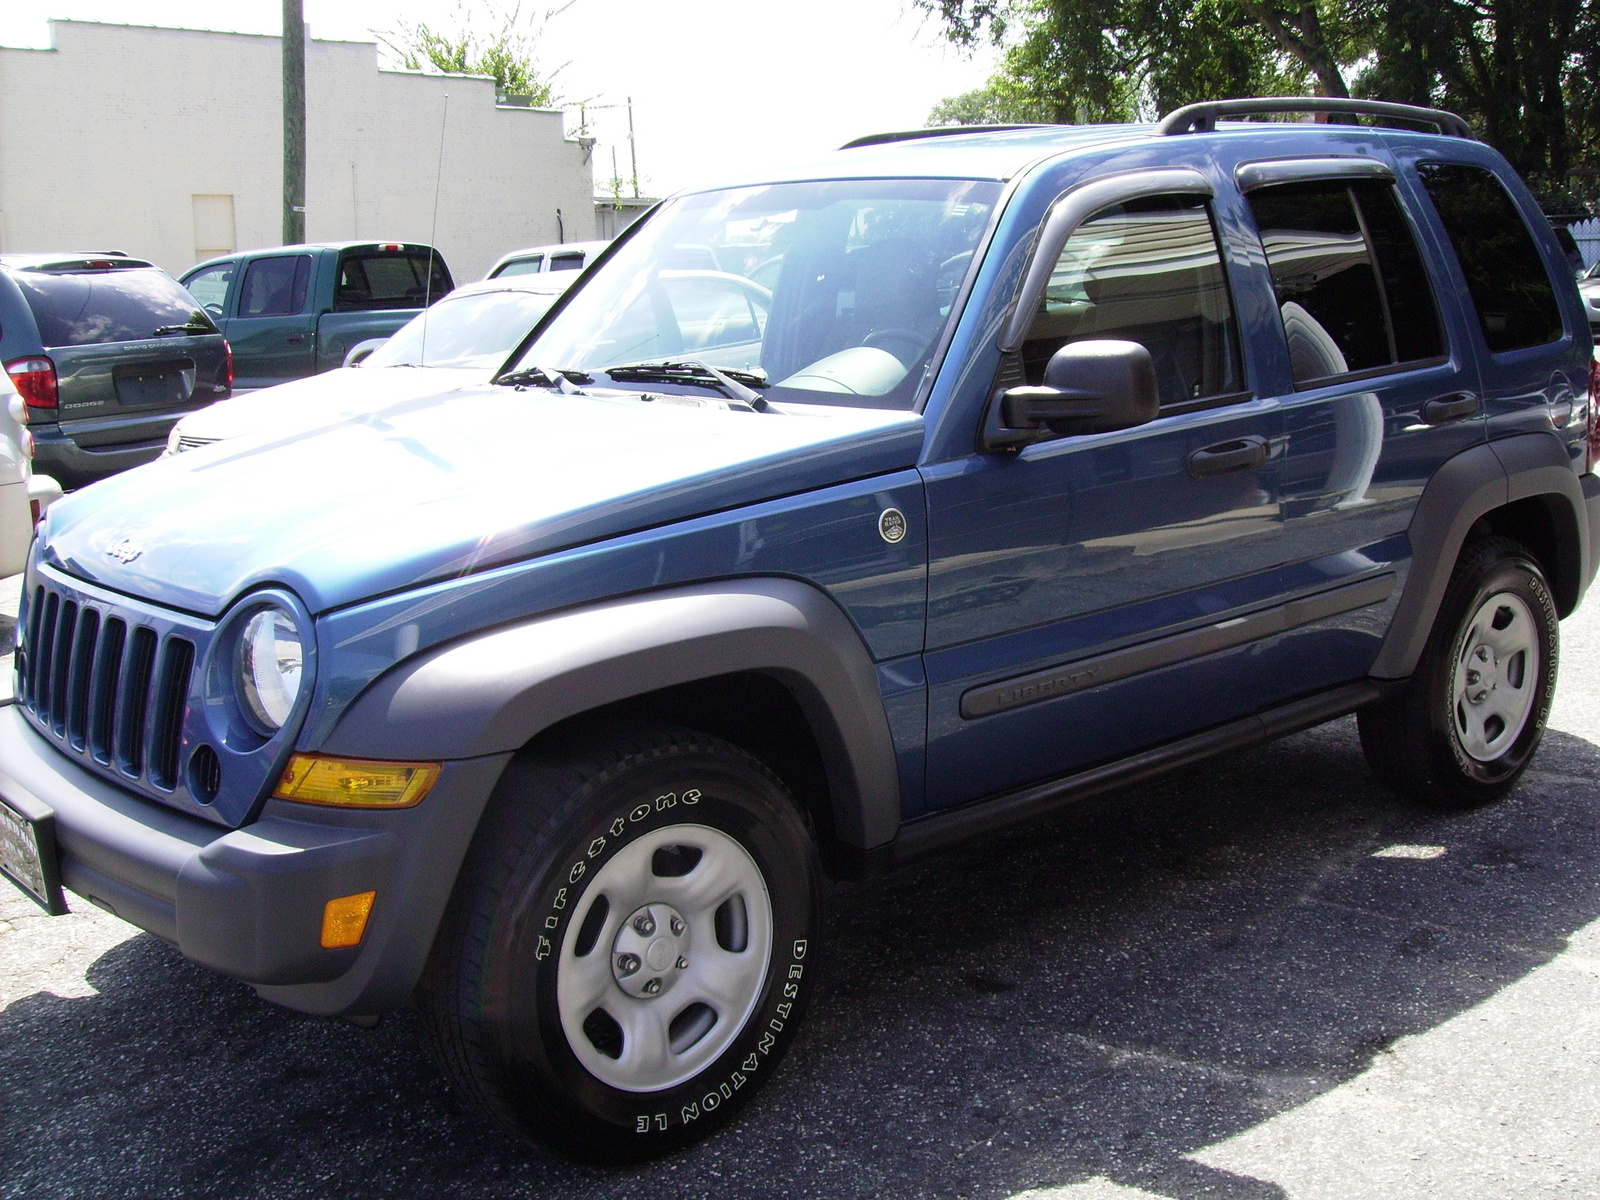 Used Jeep Cj7 Picture of 2005 Jeep Liberty Sport 4WD, exterior